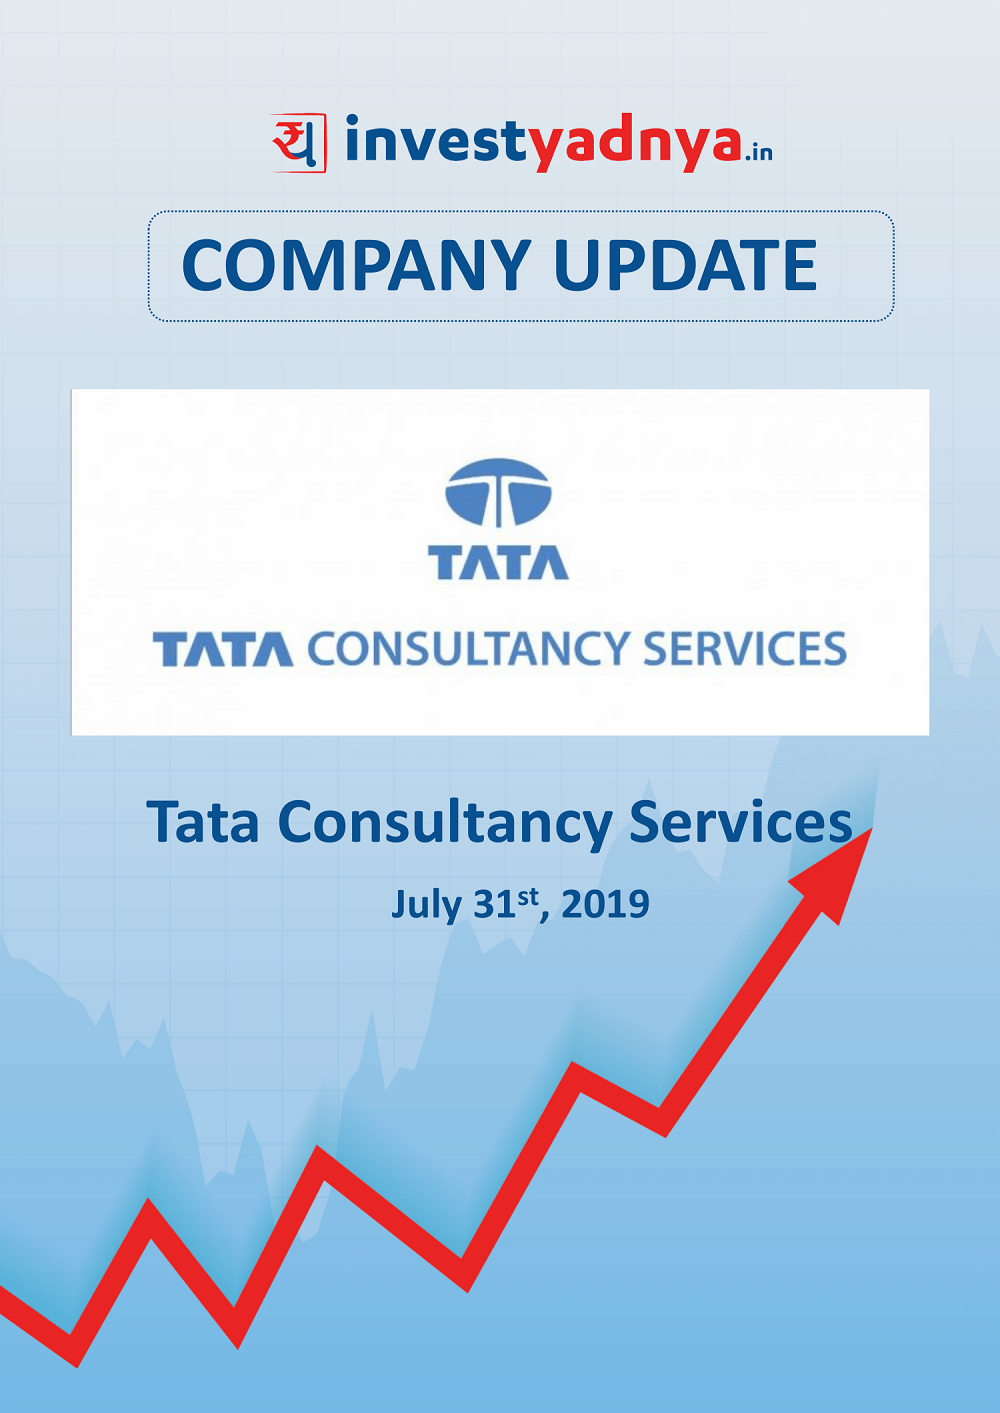 Tata Consultancy Services Ltd. is a Short and sweet analysis of the company which contains brief overview about the company both from qualitative and financial perspective. Date of update -31st July, 2019.